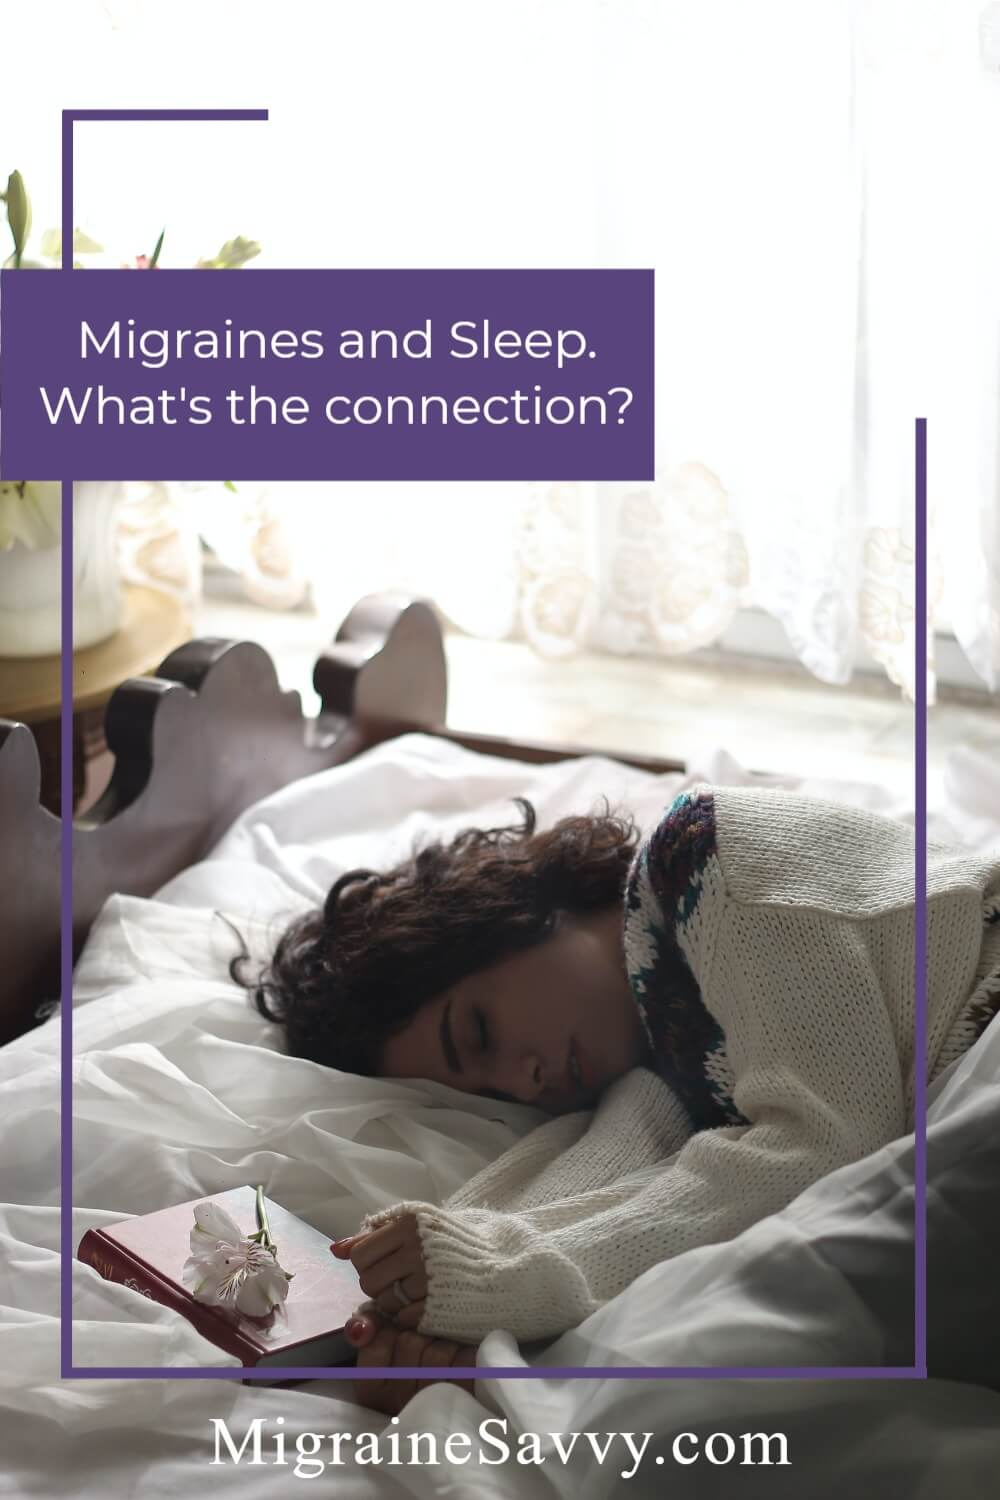 Find Migraine Relief Through Quality Sleep @migrainesavvy